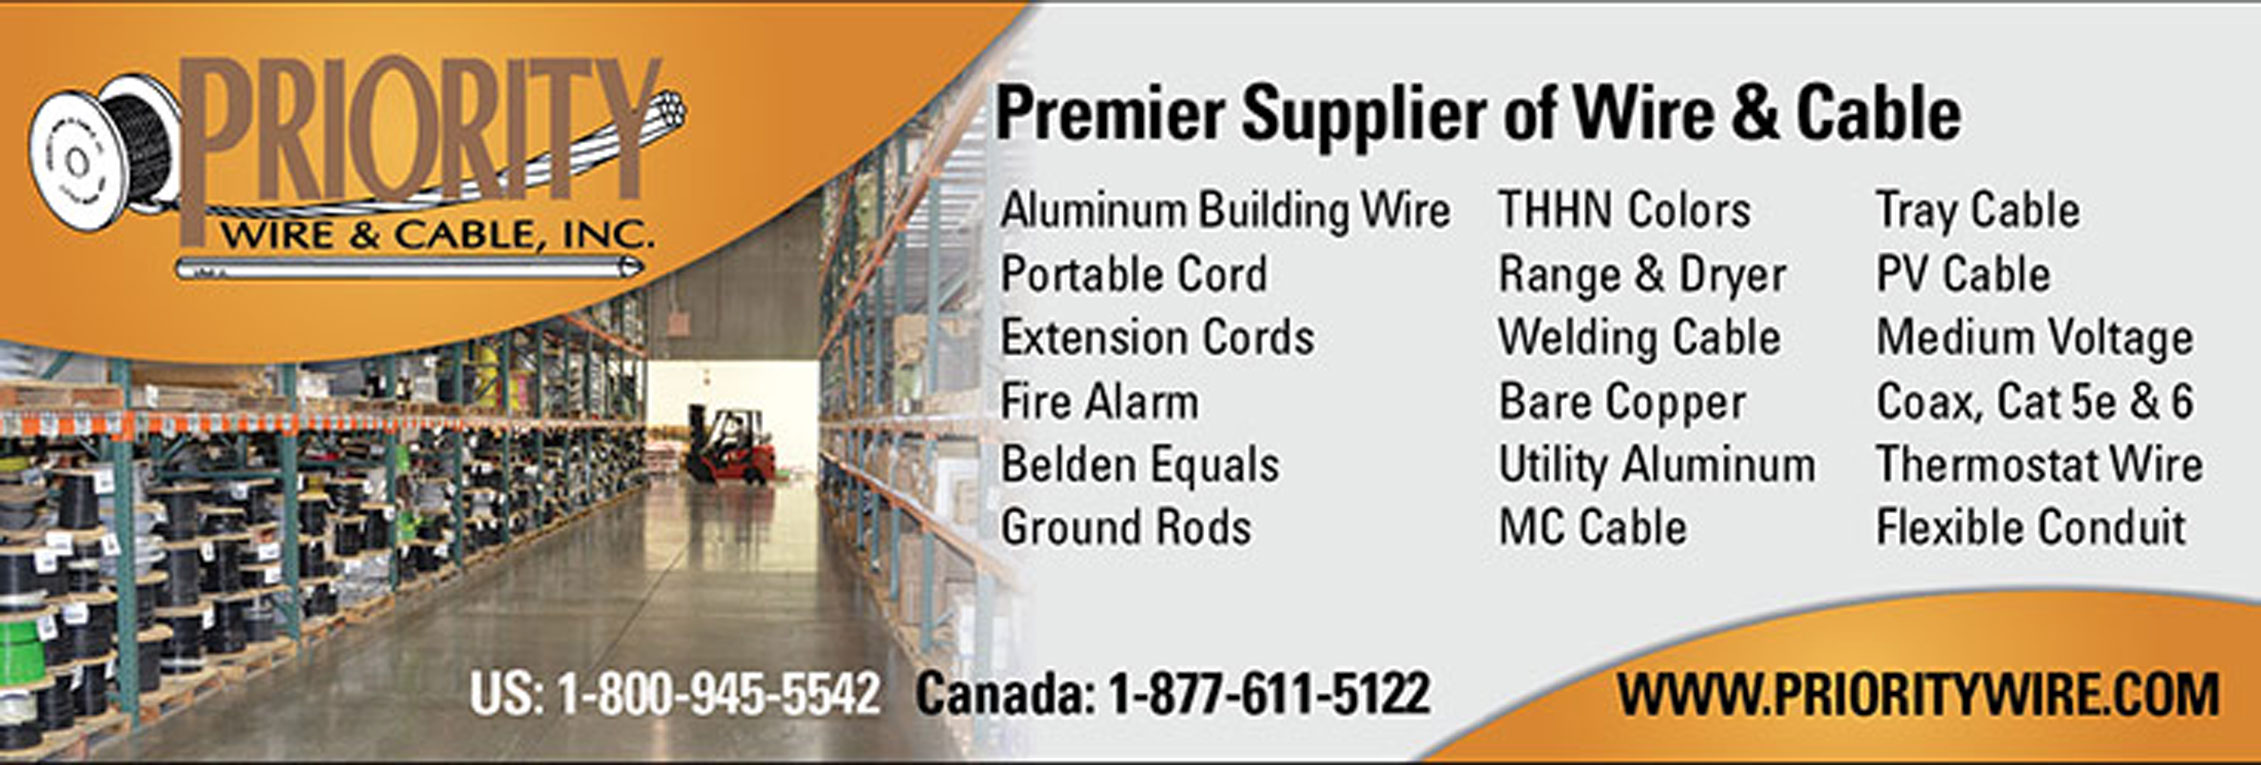 Premier Supplier of Wire & Cable